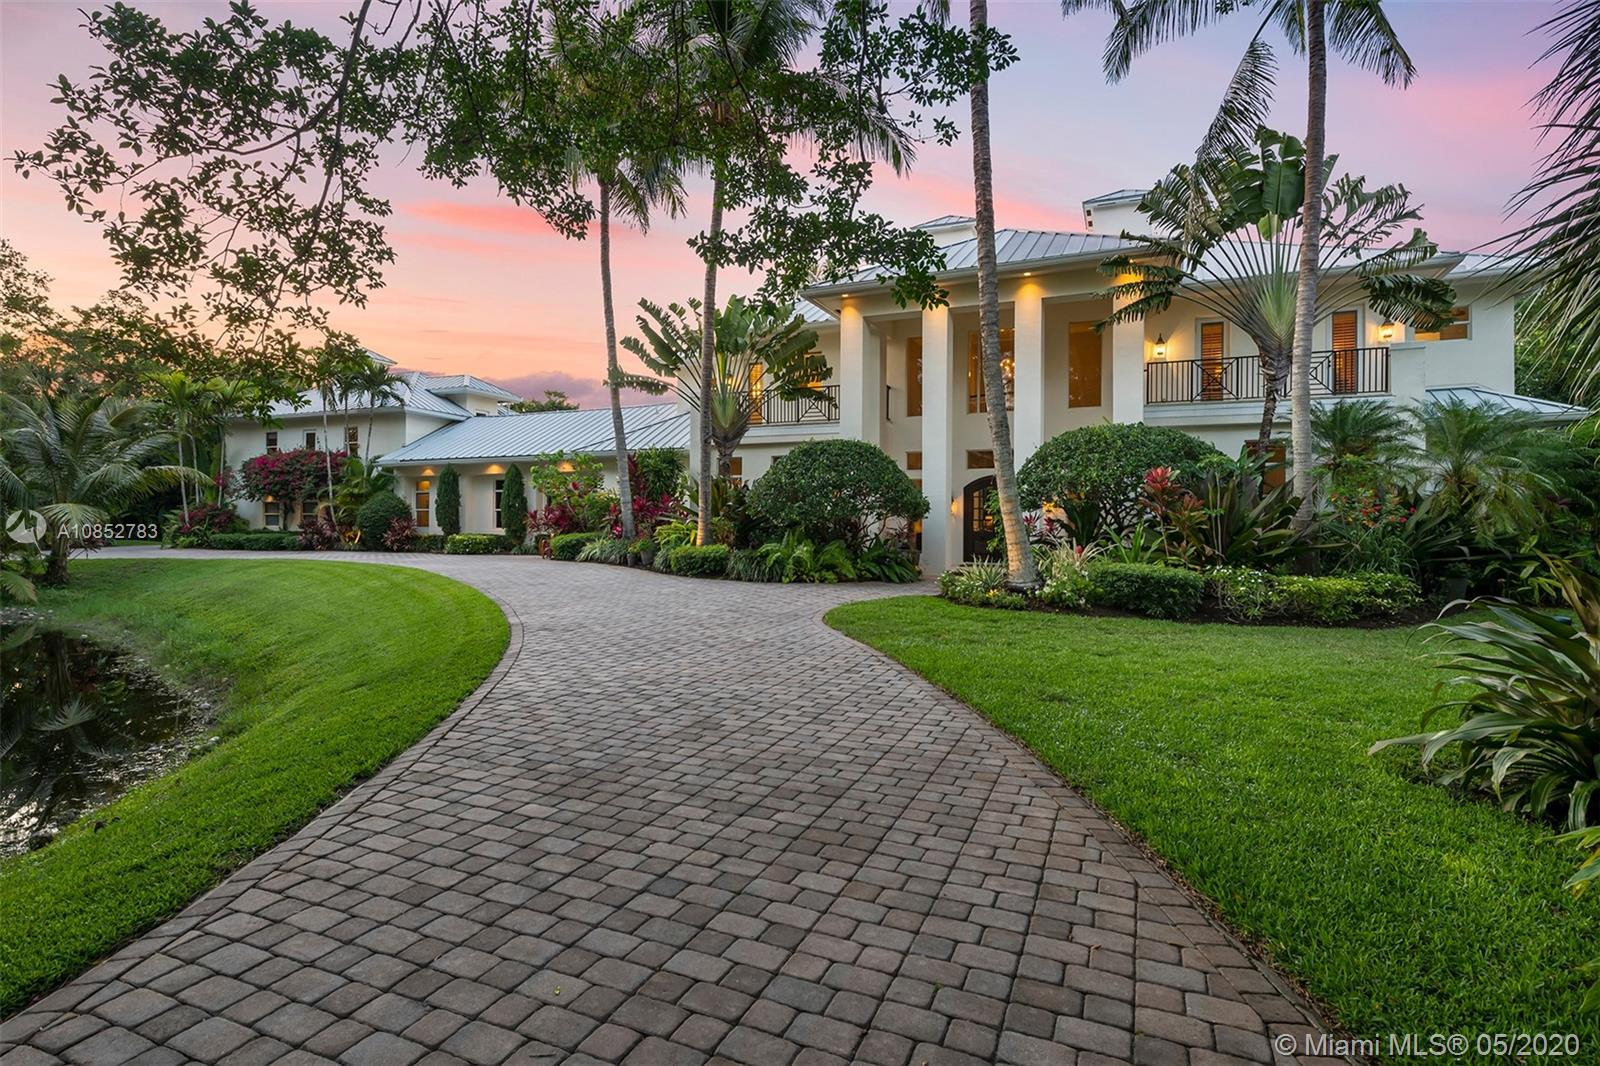 Welcome to 8899 NW 70th Court,  nestled into one of the most prestigious neighborhoods of Parkland, Florida - BBB Ranches. This 3+ acre estate is situated on luscious gated grounds and is the true meaning of luxurious equestrian living. The coastal inspired design features 7 bedrooms, 7 bathrooms, and 2 half bathrooms. The chef's style kitchen is equipped with thermador appliances. Perfect for entertaining, the property features a theater room, game room, a covered lanai, a resort style pool,  summer kitchen, and an abundance of outdoor living spaces surrounded by your own tropical oasis! Just when you think this property can't get any more impressive, there's also an eight stall barn! Located 10 minutes from Boca Raton, 30 minutes from Fort Lauderdale and less than an hour from Miami.